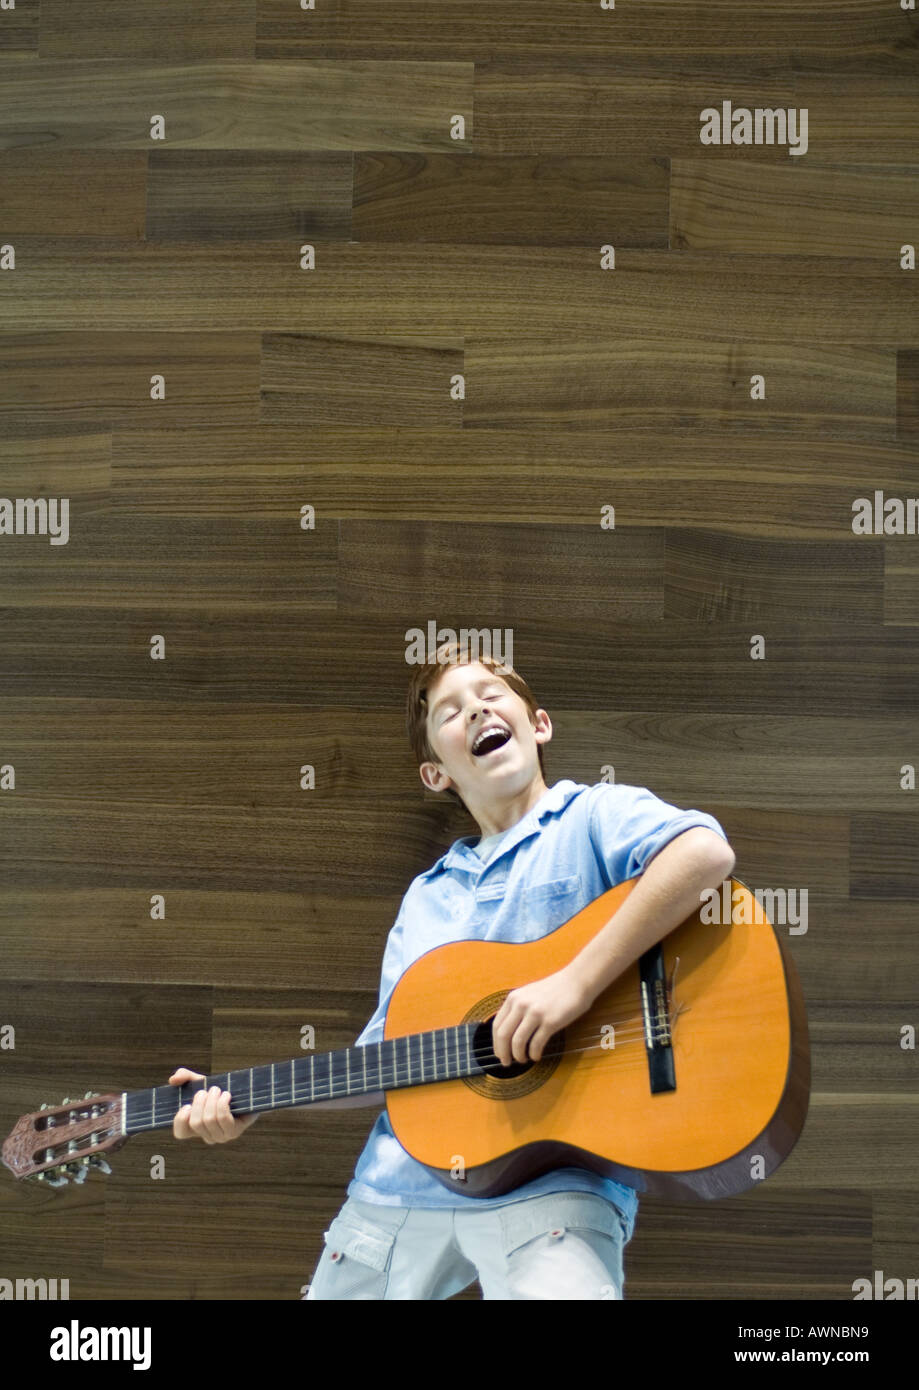 Boy playing guitar and singing - Stock Image